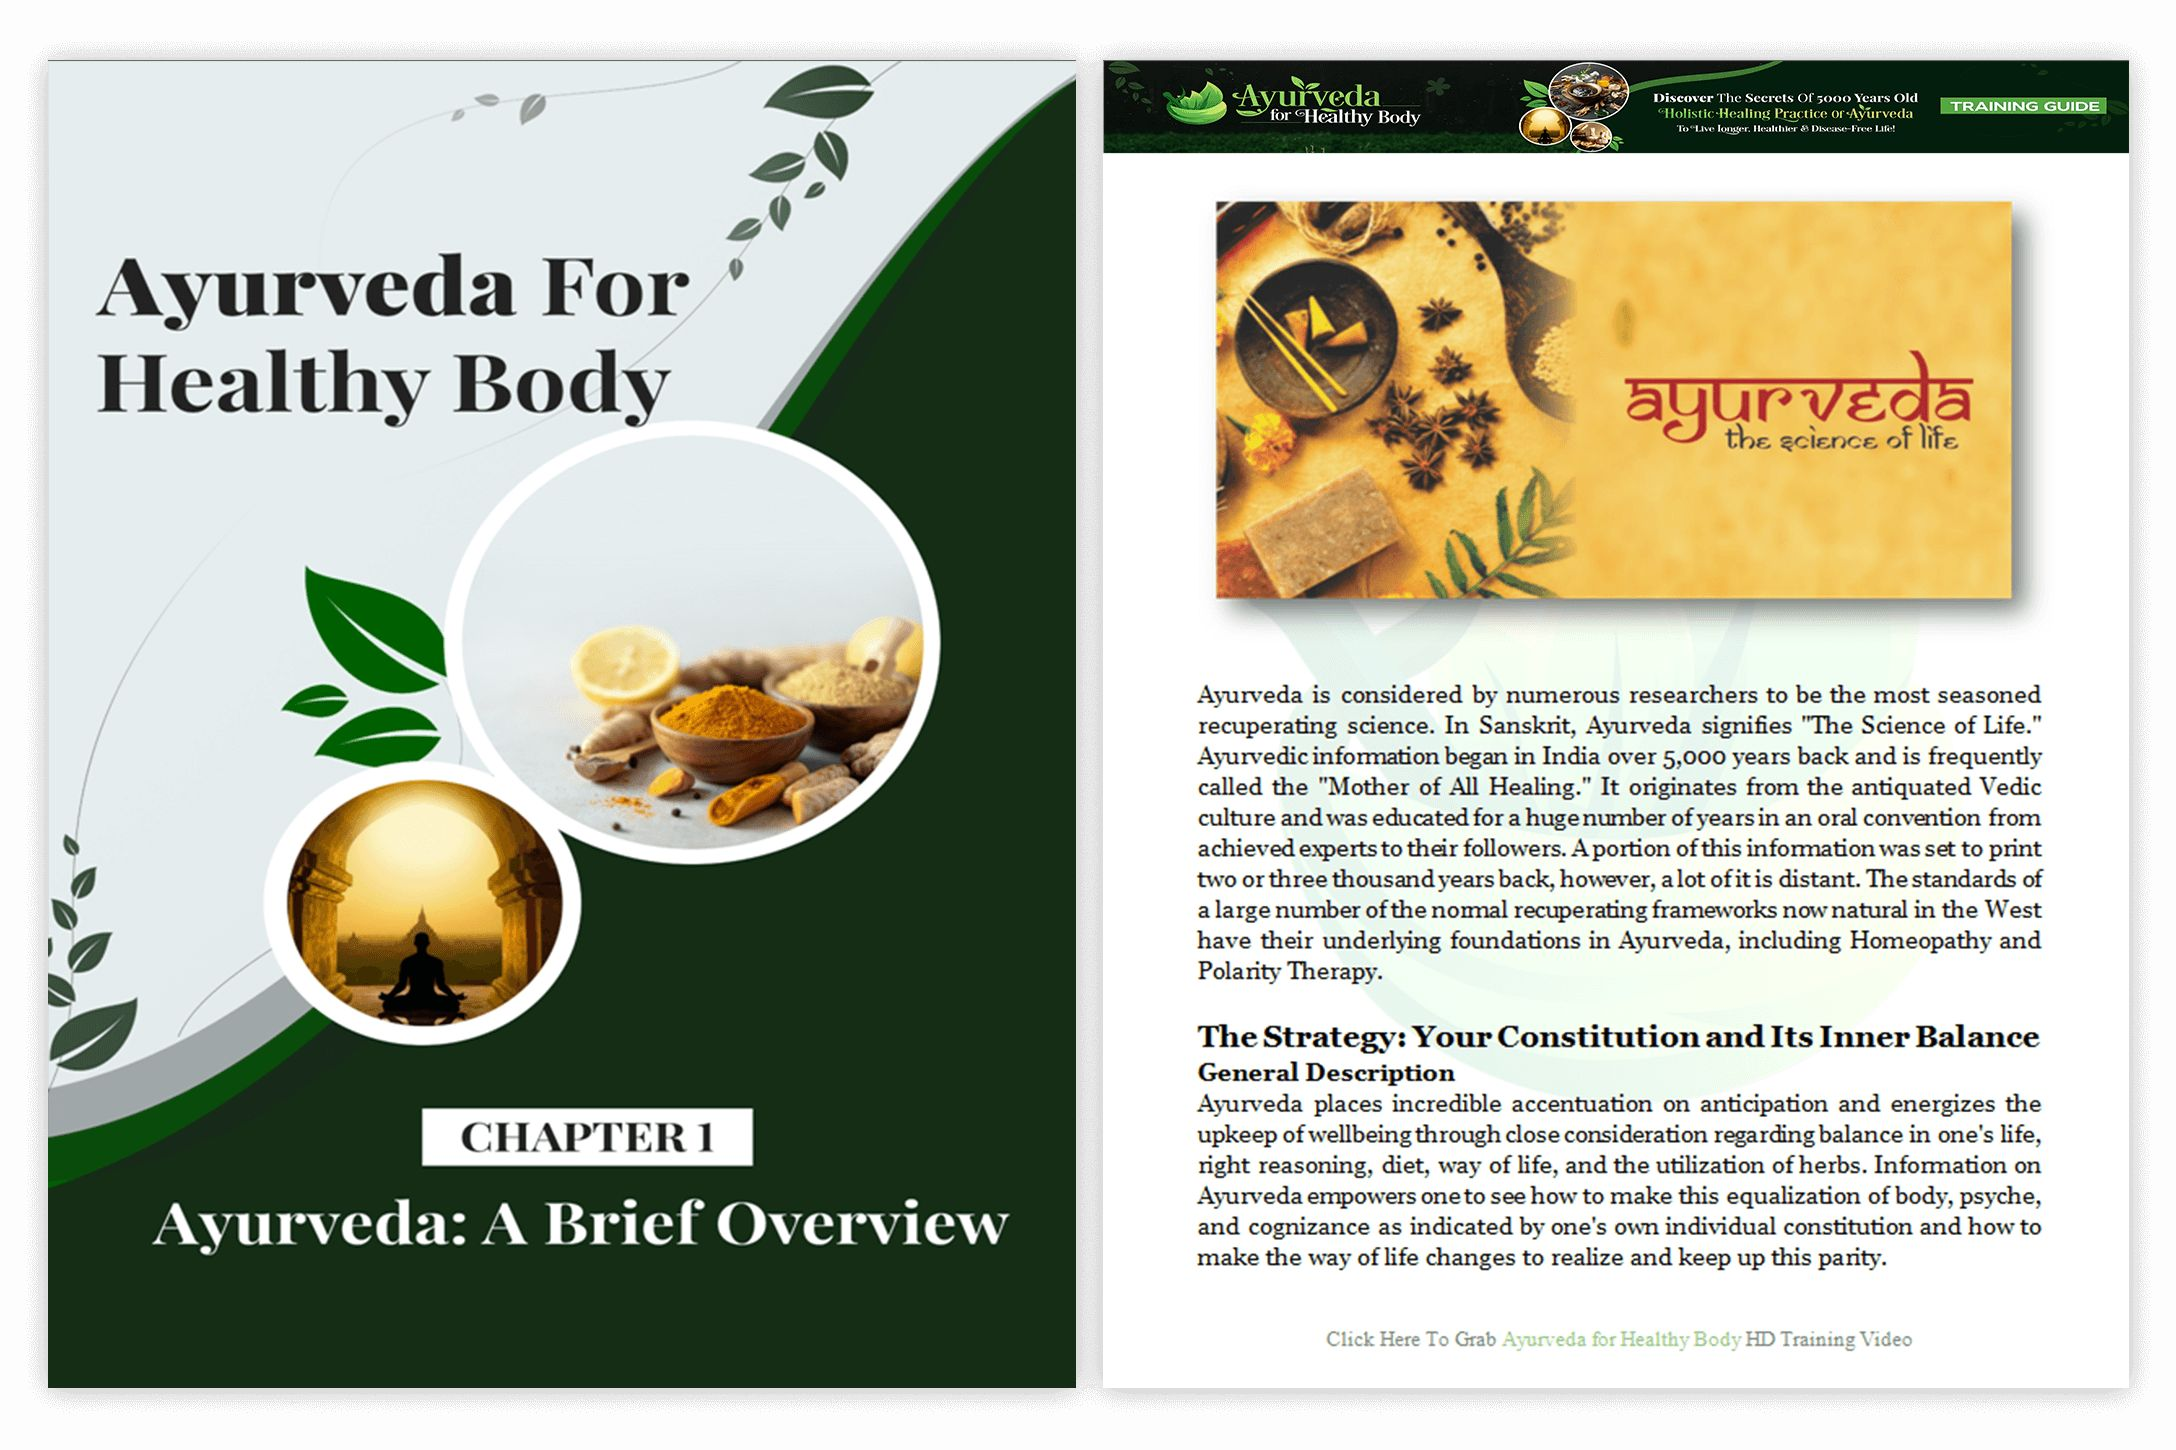 Ayurveda-For-Healthy-Body-PLR-feature-2